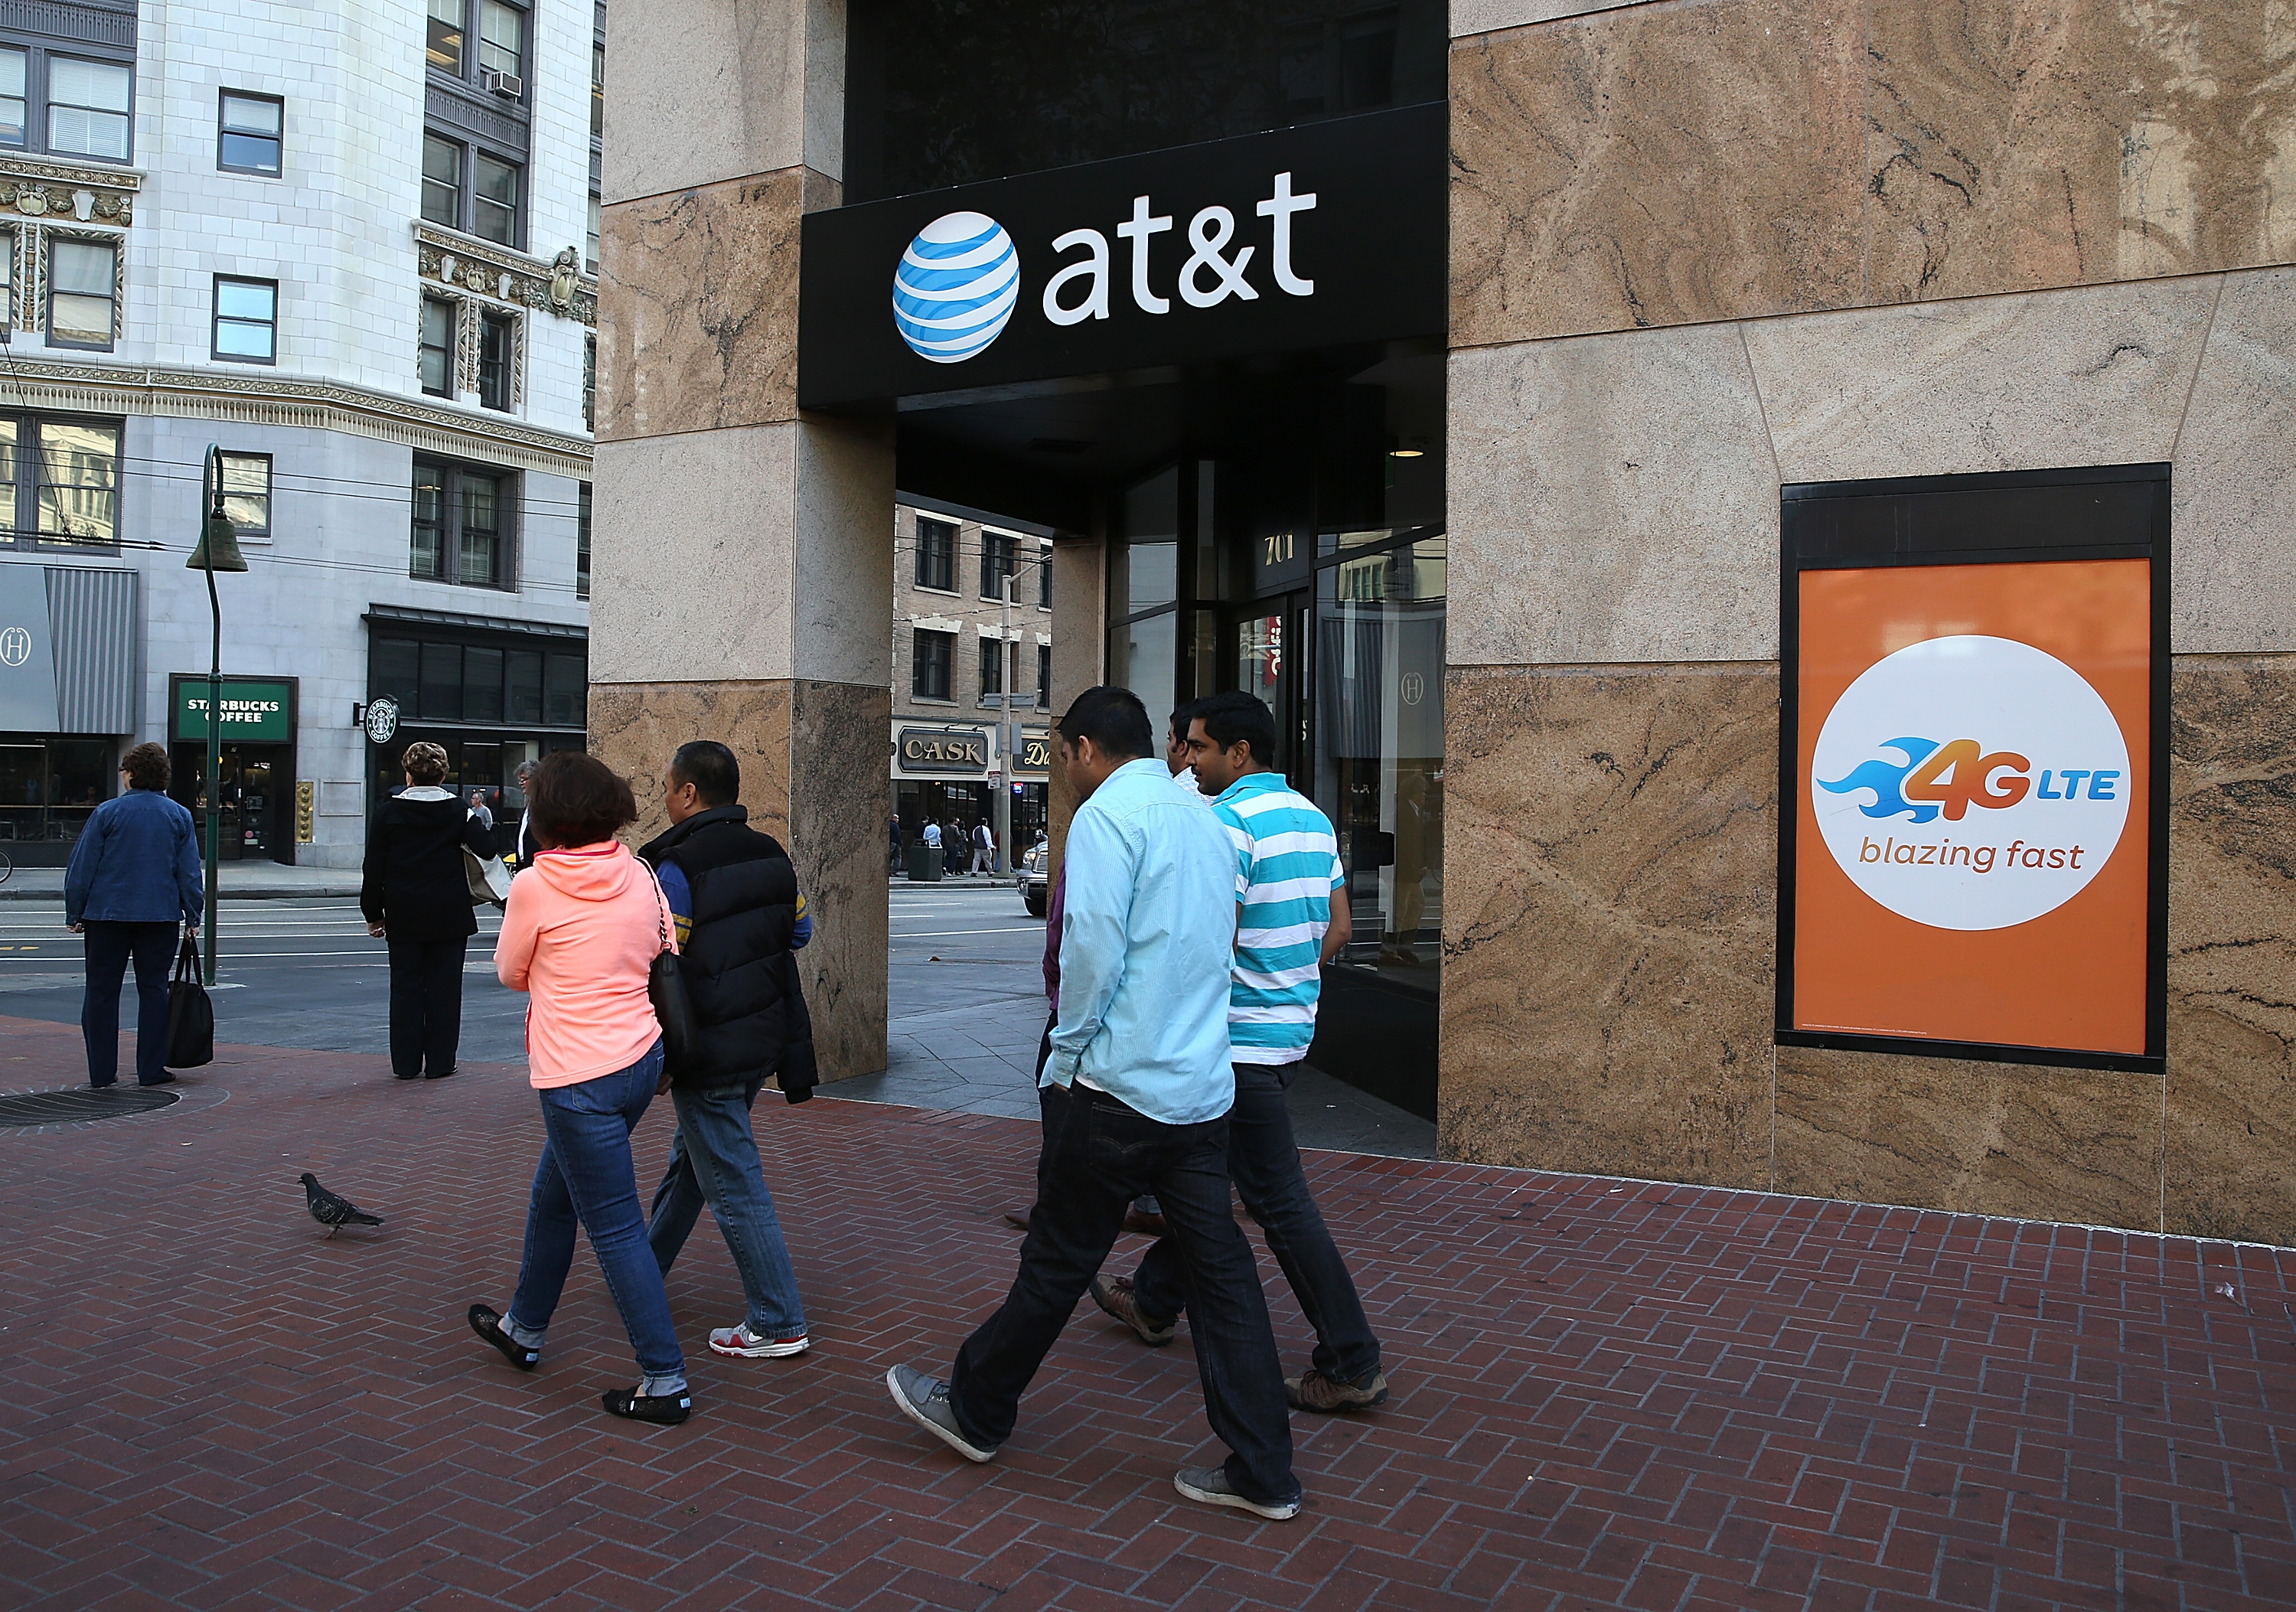 SAN FRANCISCO, CA - OCTOBER 23: Pedestrians walk by an AT&T store on October 23, 2013 in San Francisco, California. AT&T is going to report third quarter earnings after the closing bell. (Photo by Justin Sullivan/Getty Images)